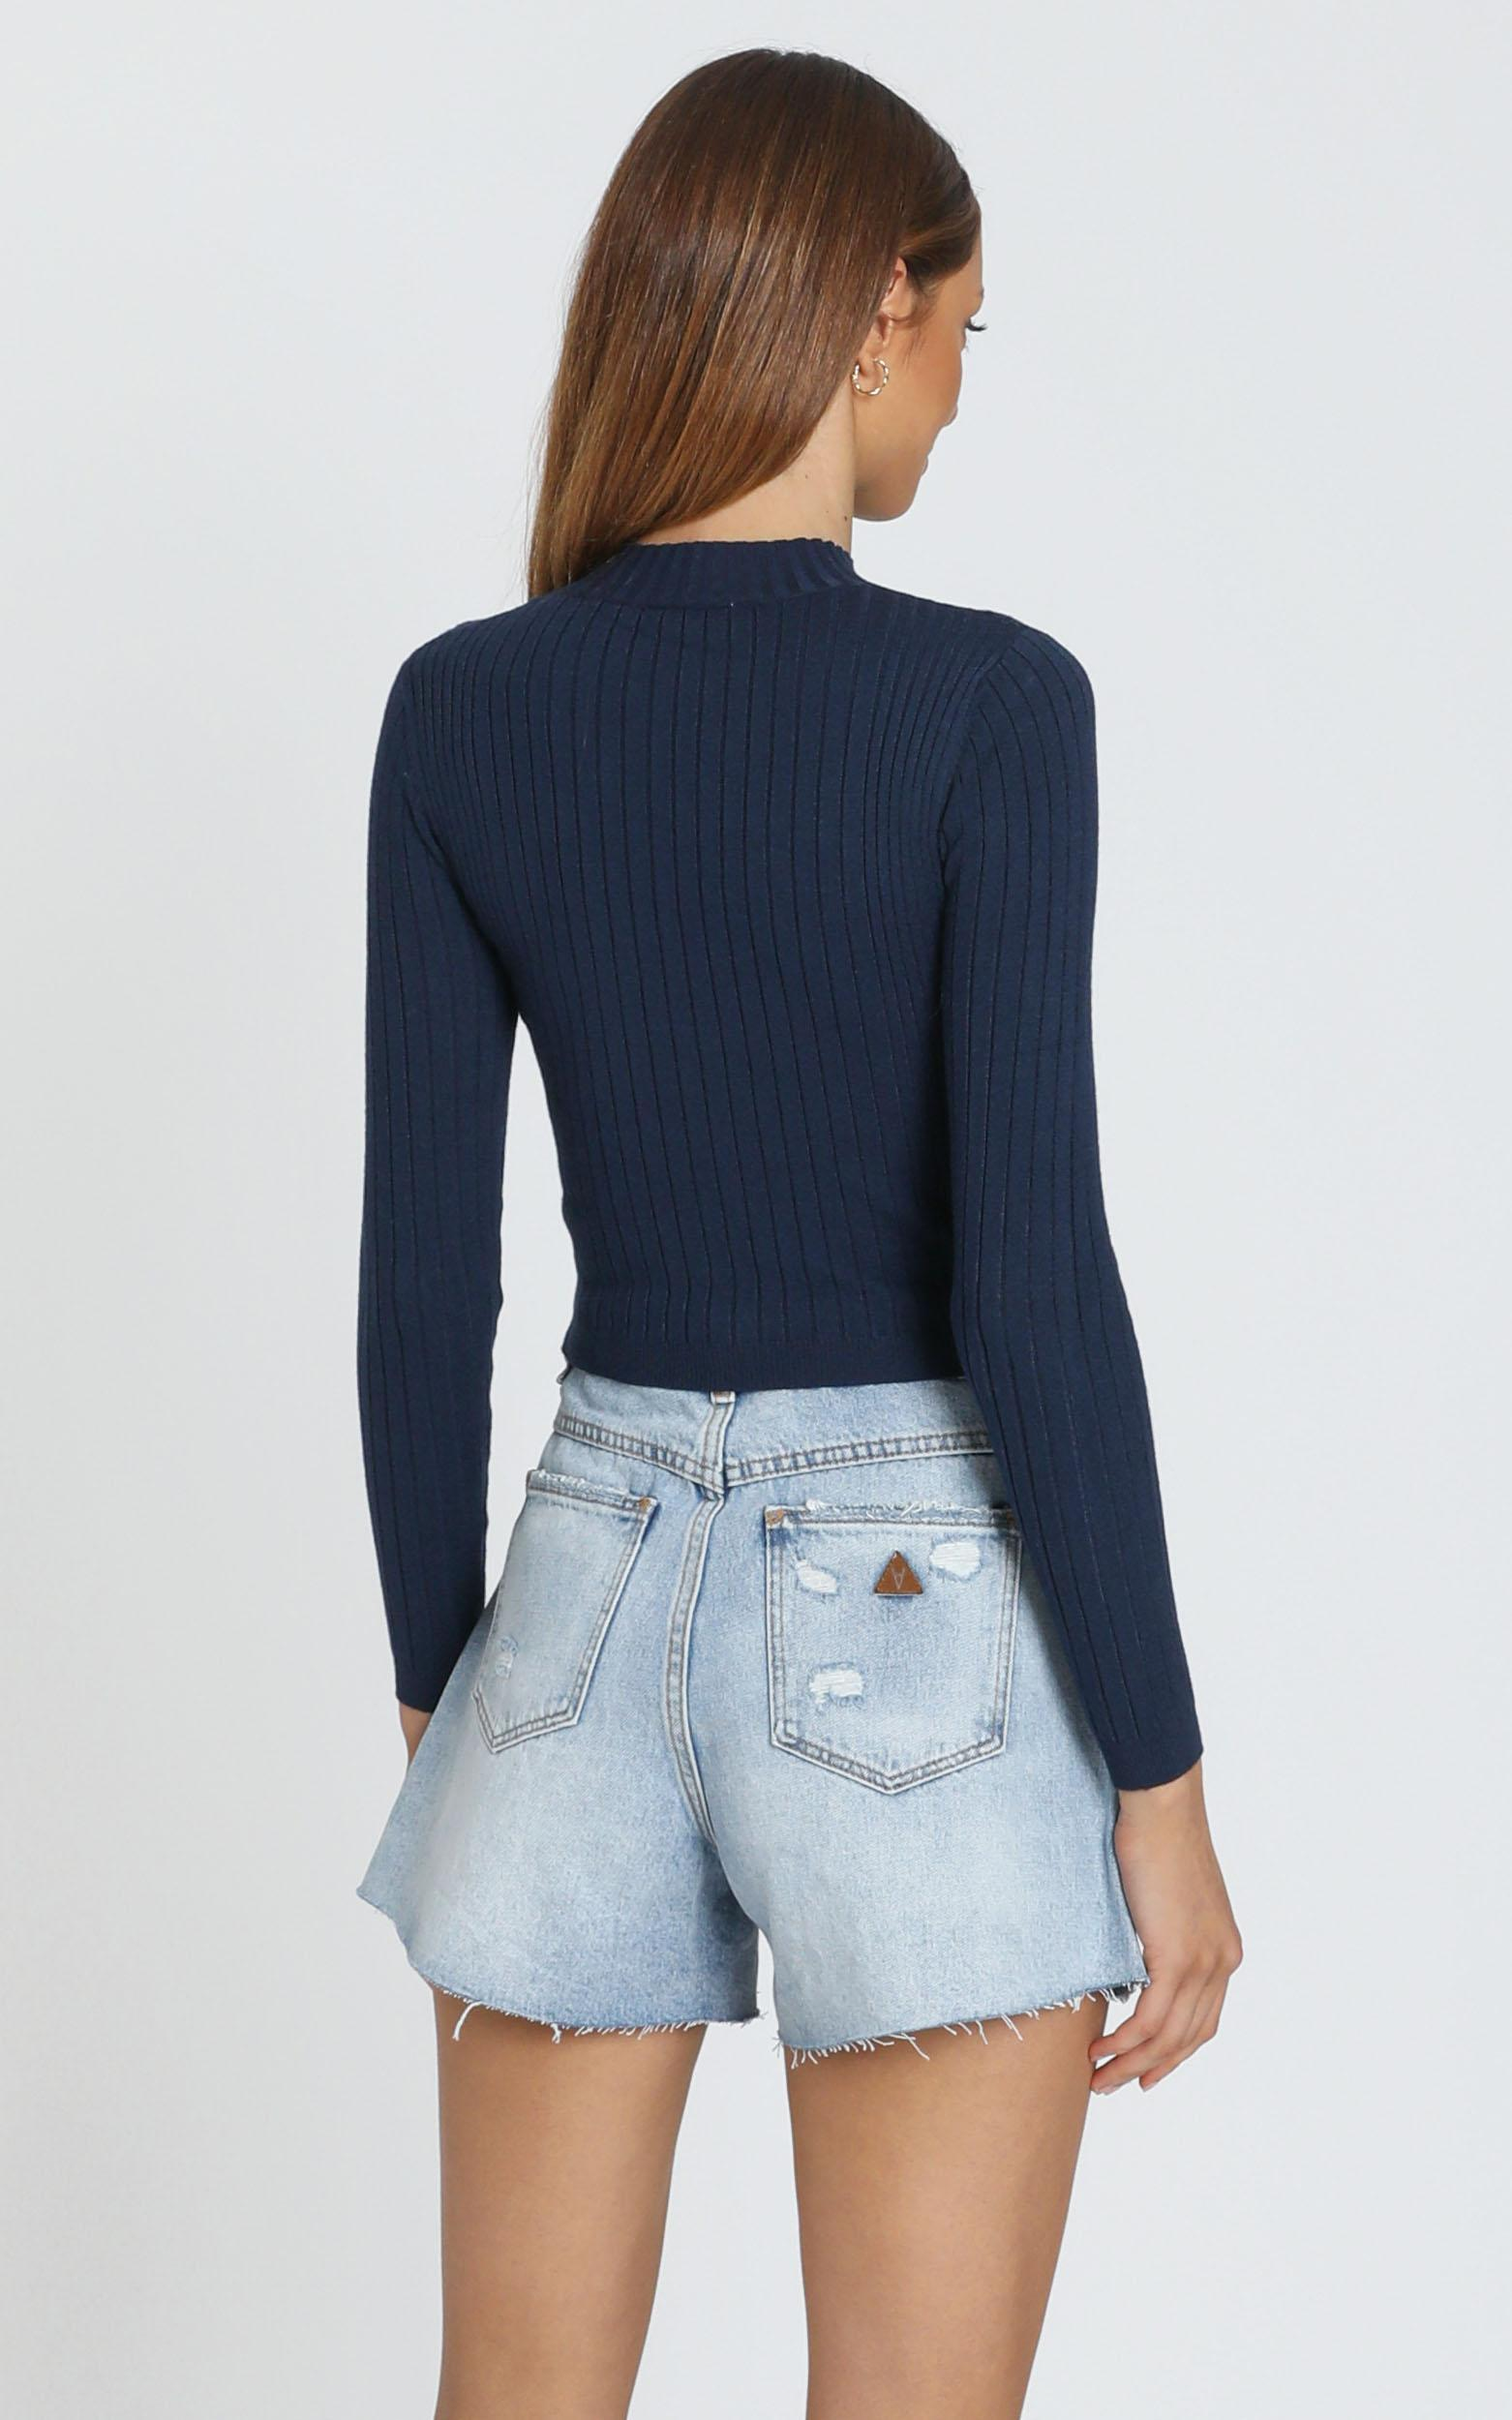 Downtown Dreams Knit Top in navy - 8 (S), Navy, hi-res image number null